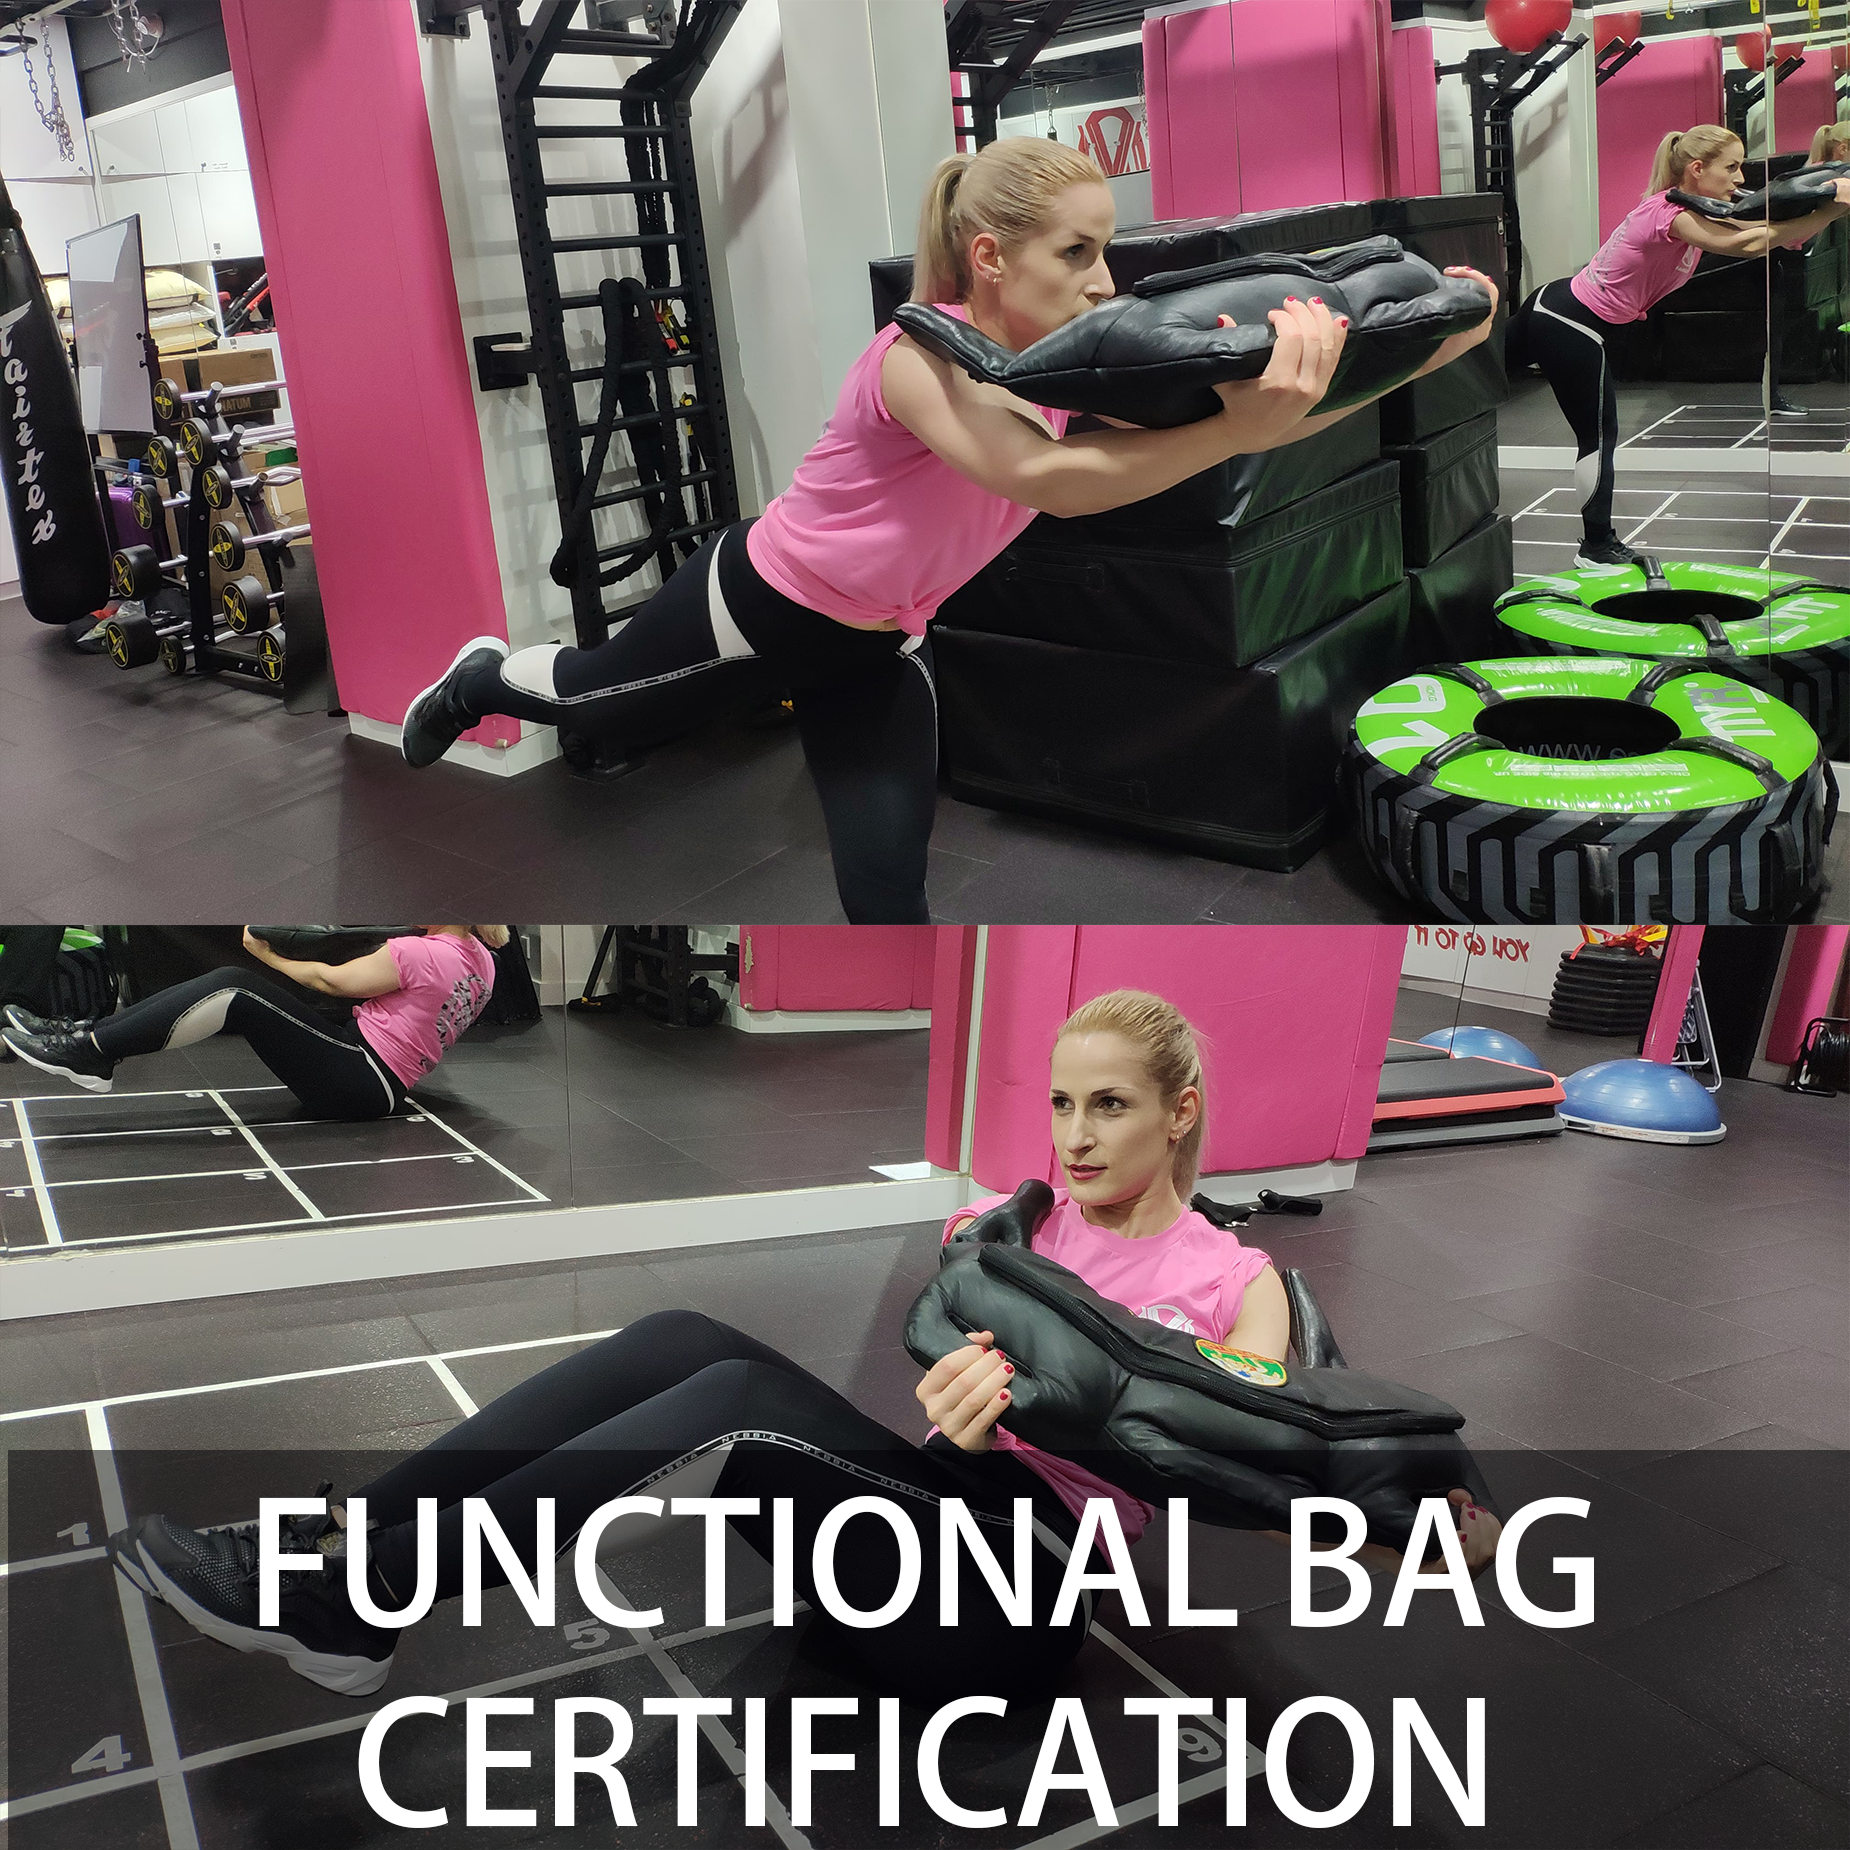 保加利亞袋證書課程(Functional Bag Certification)